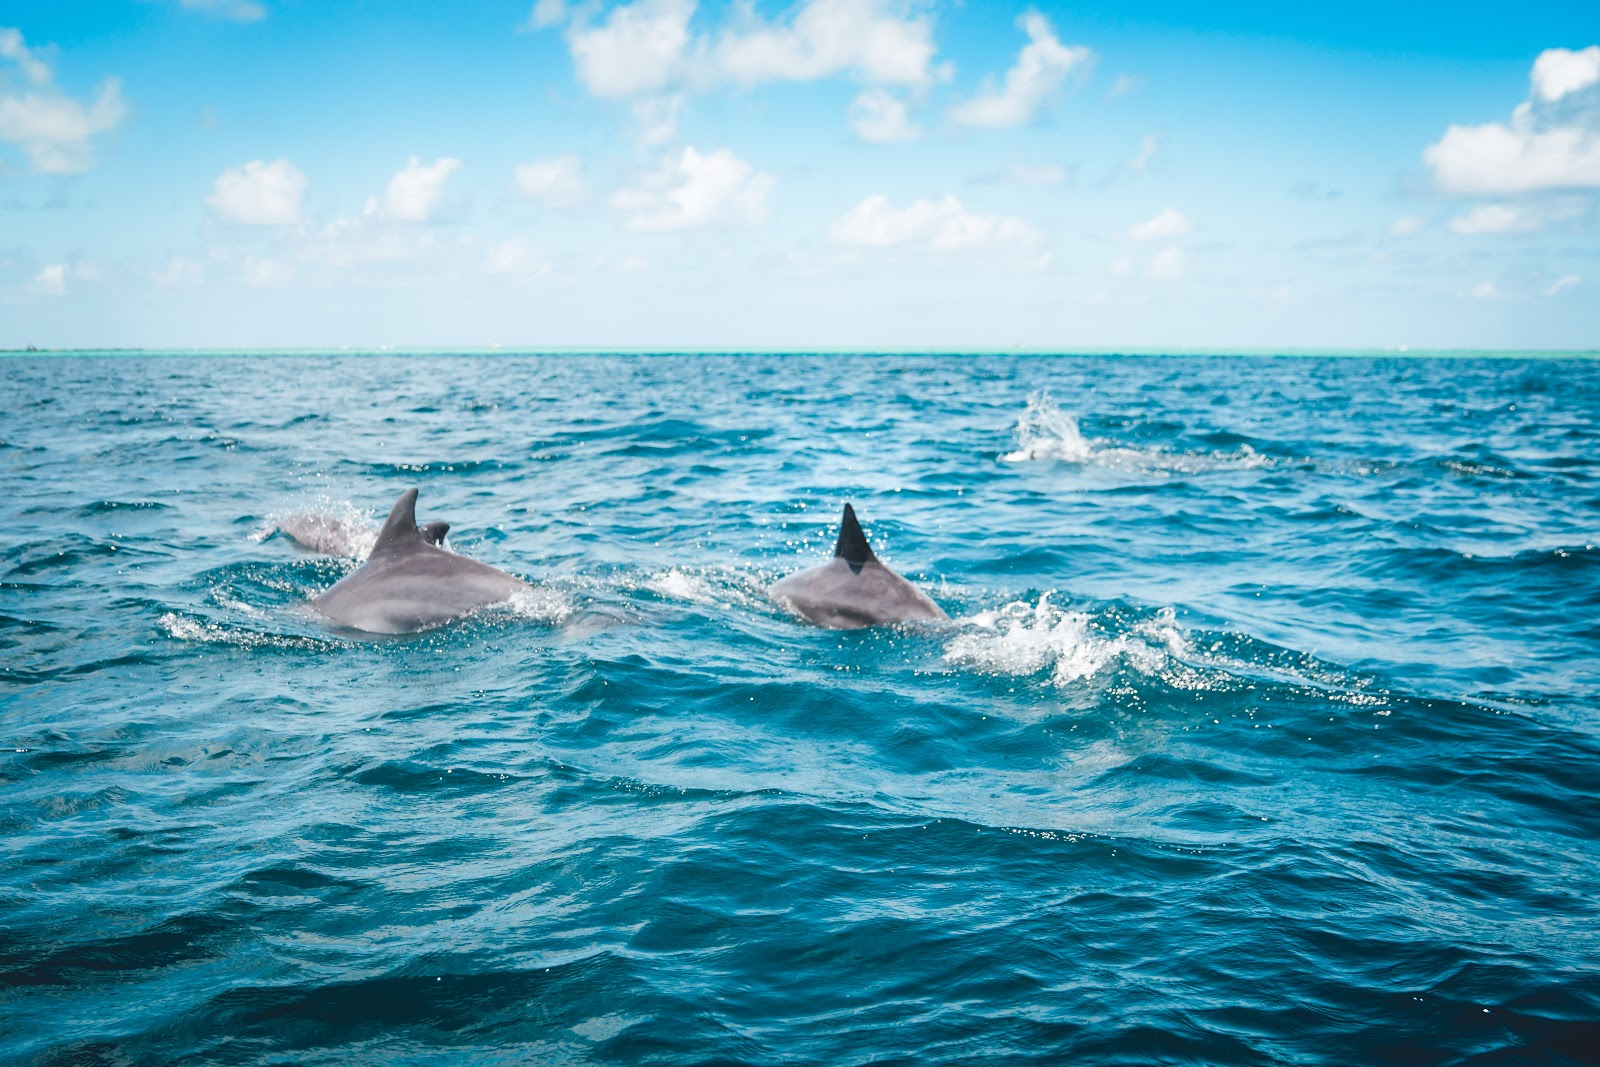 wild dolphins swimming in the ocean